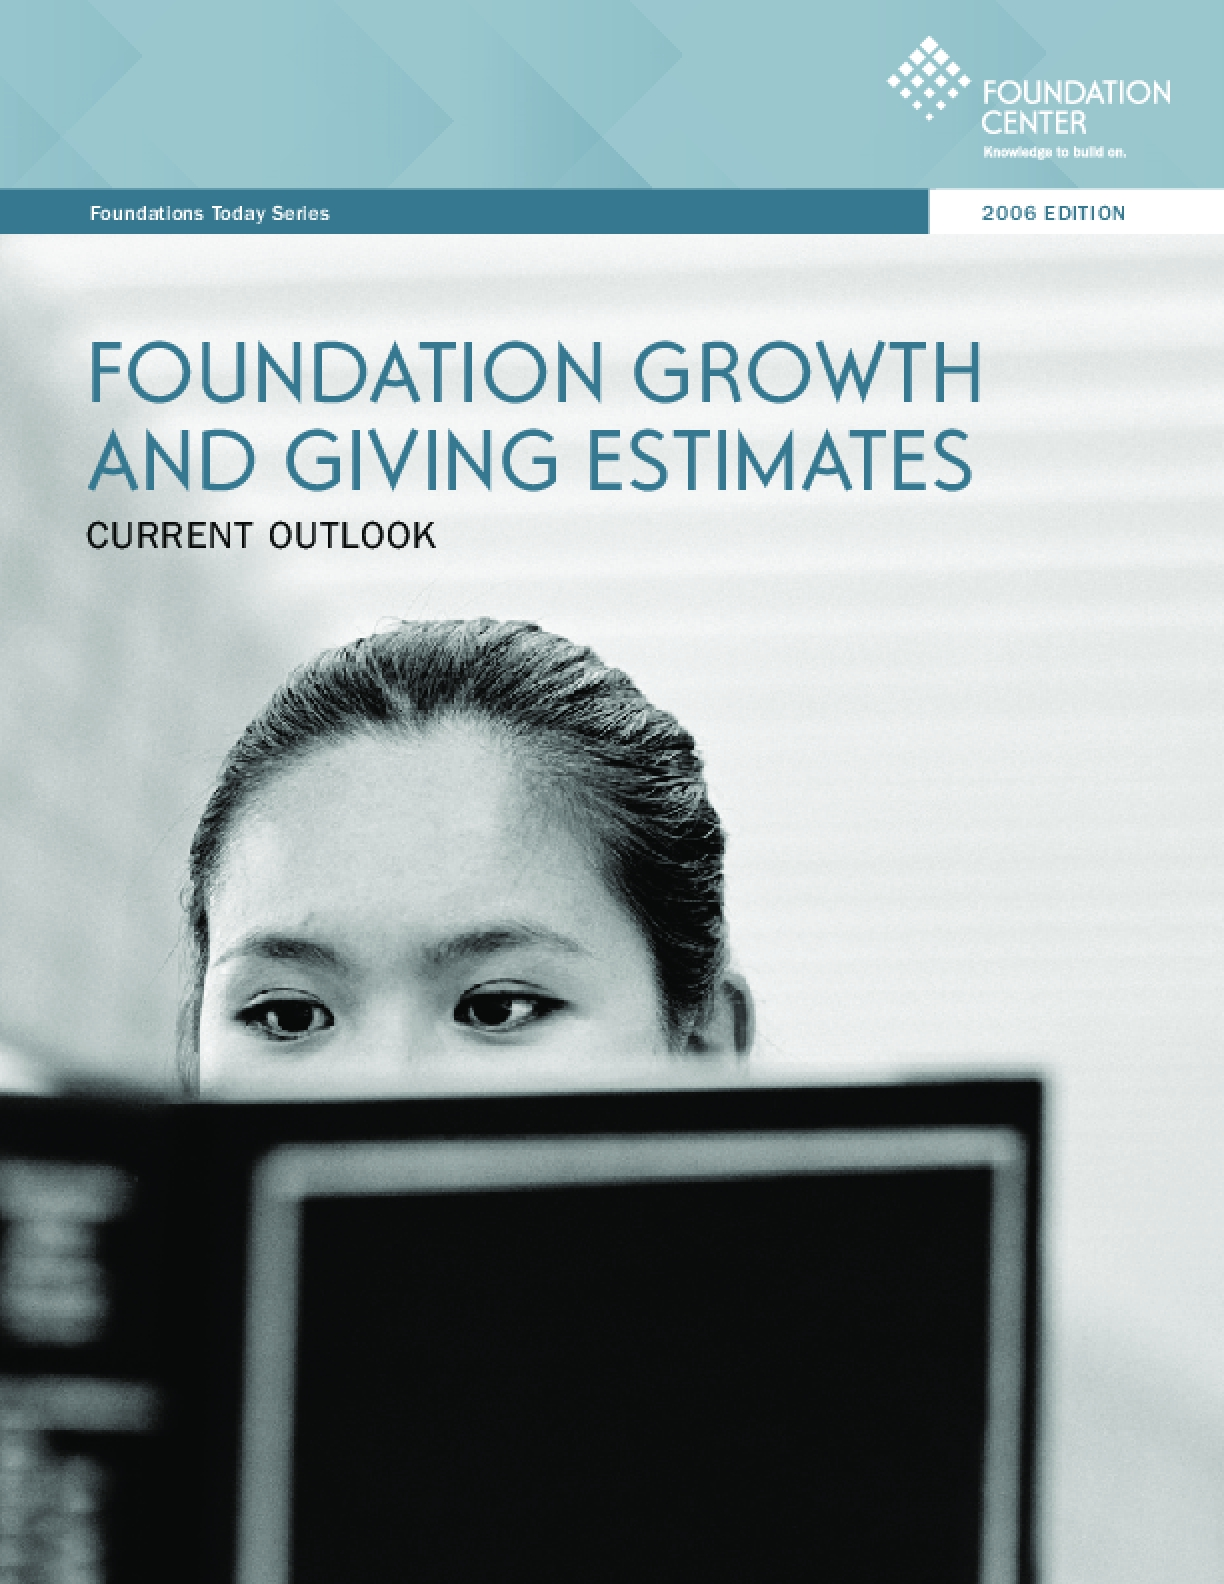 Foundation Growth and Giving Estimates: 2006 Edition